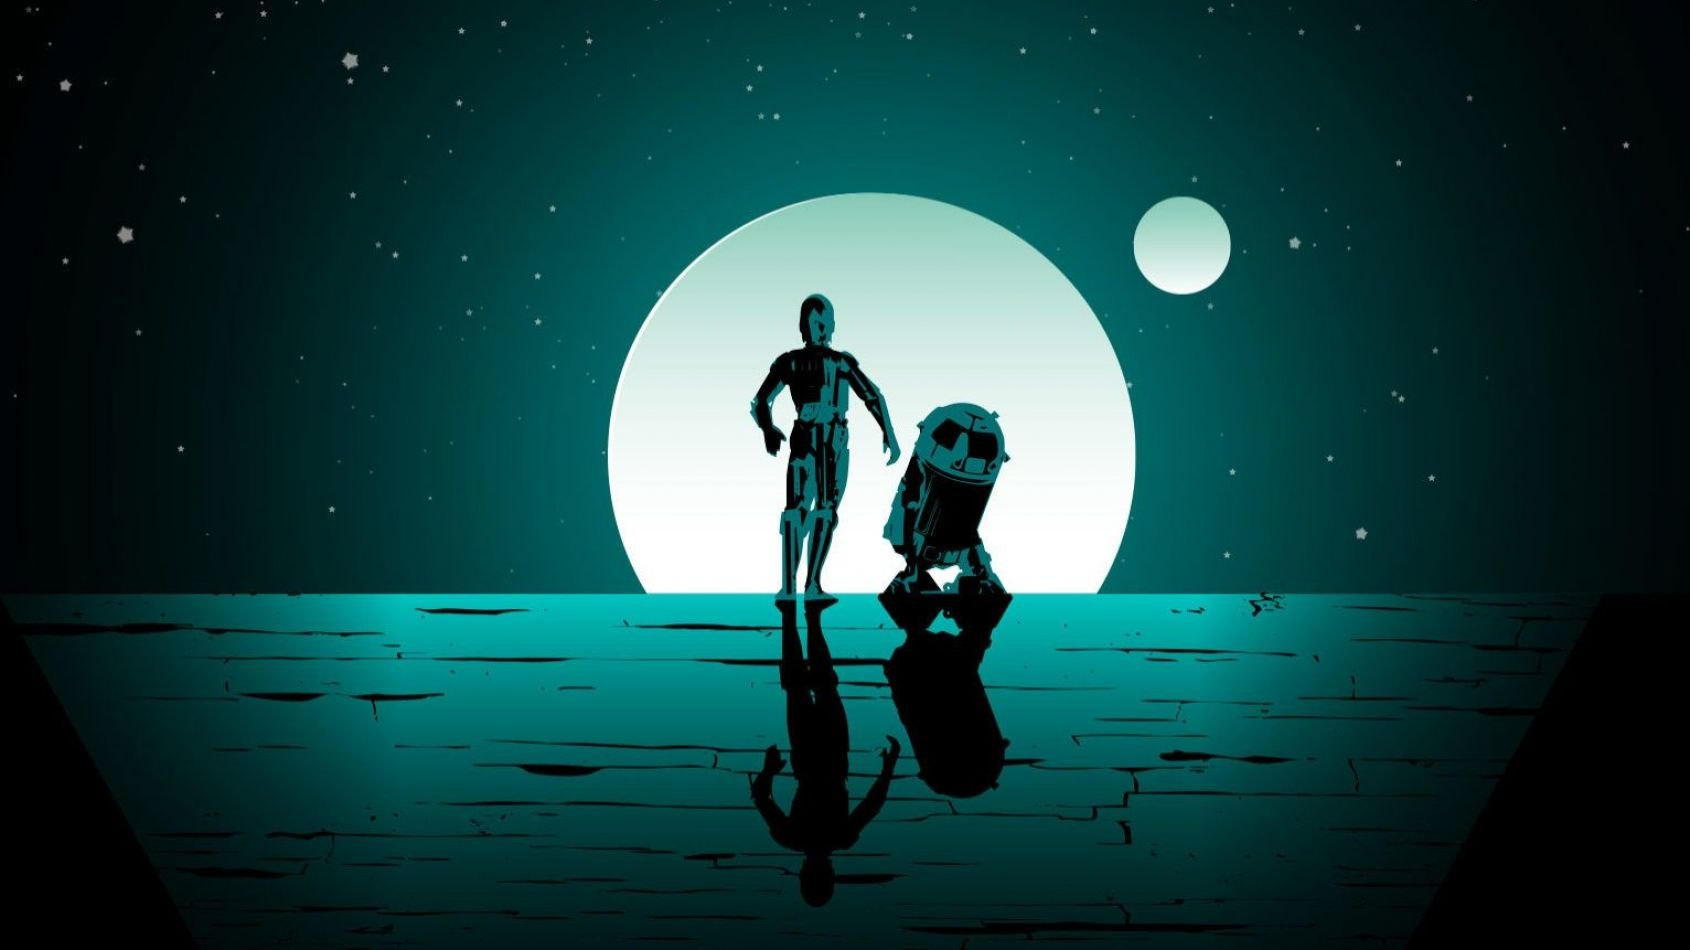 Les synopsis du recueil : From A Certain Point of View